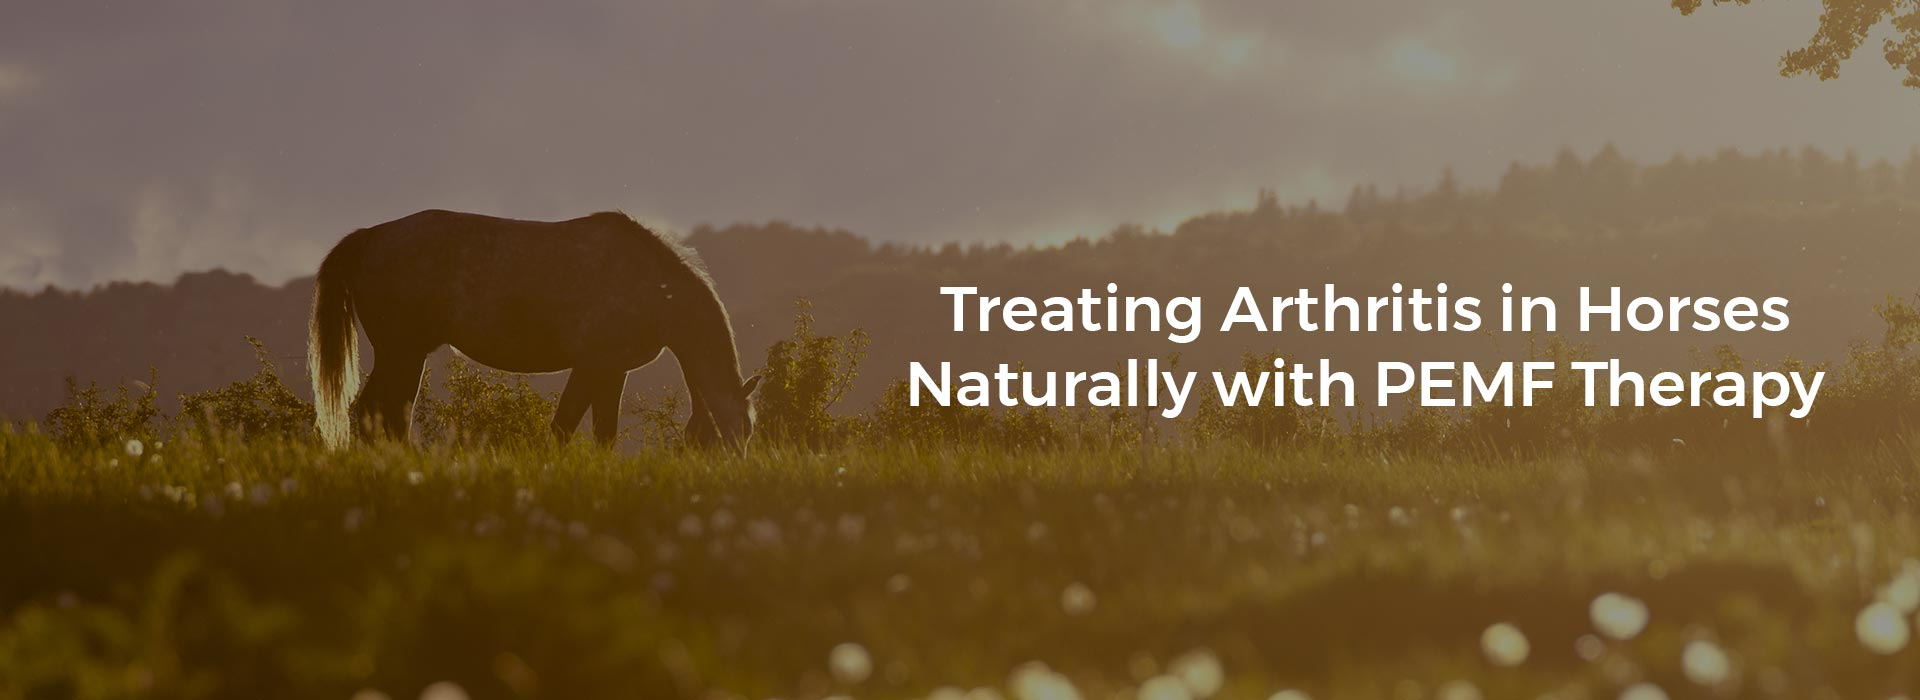 Treating Arthritis in Horses Naturally with PEMF Therapy